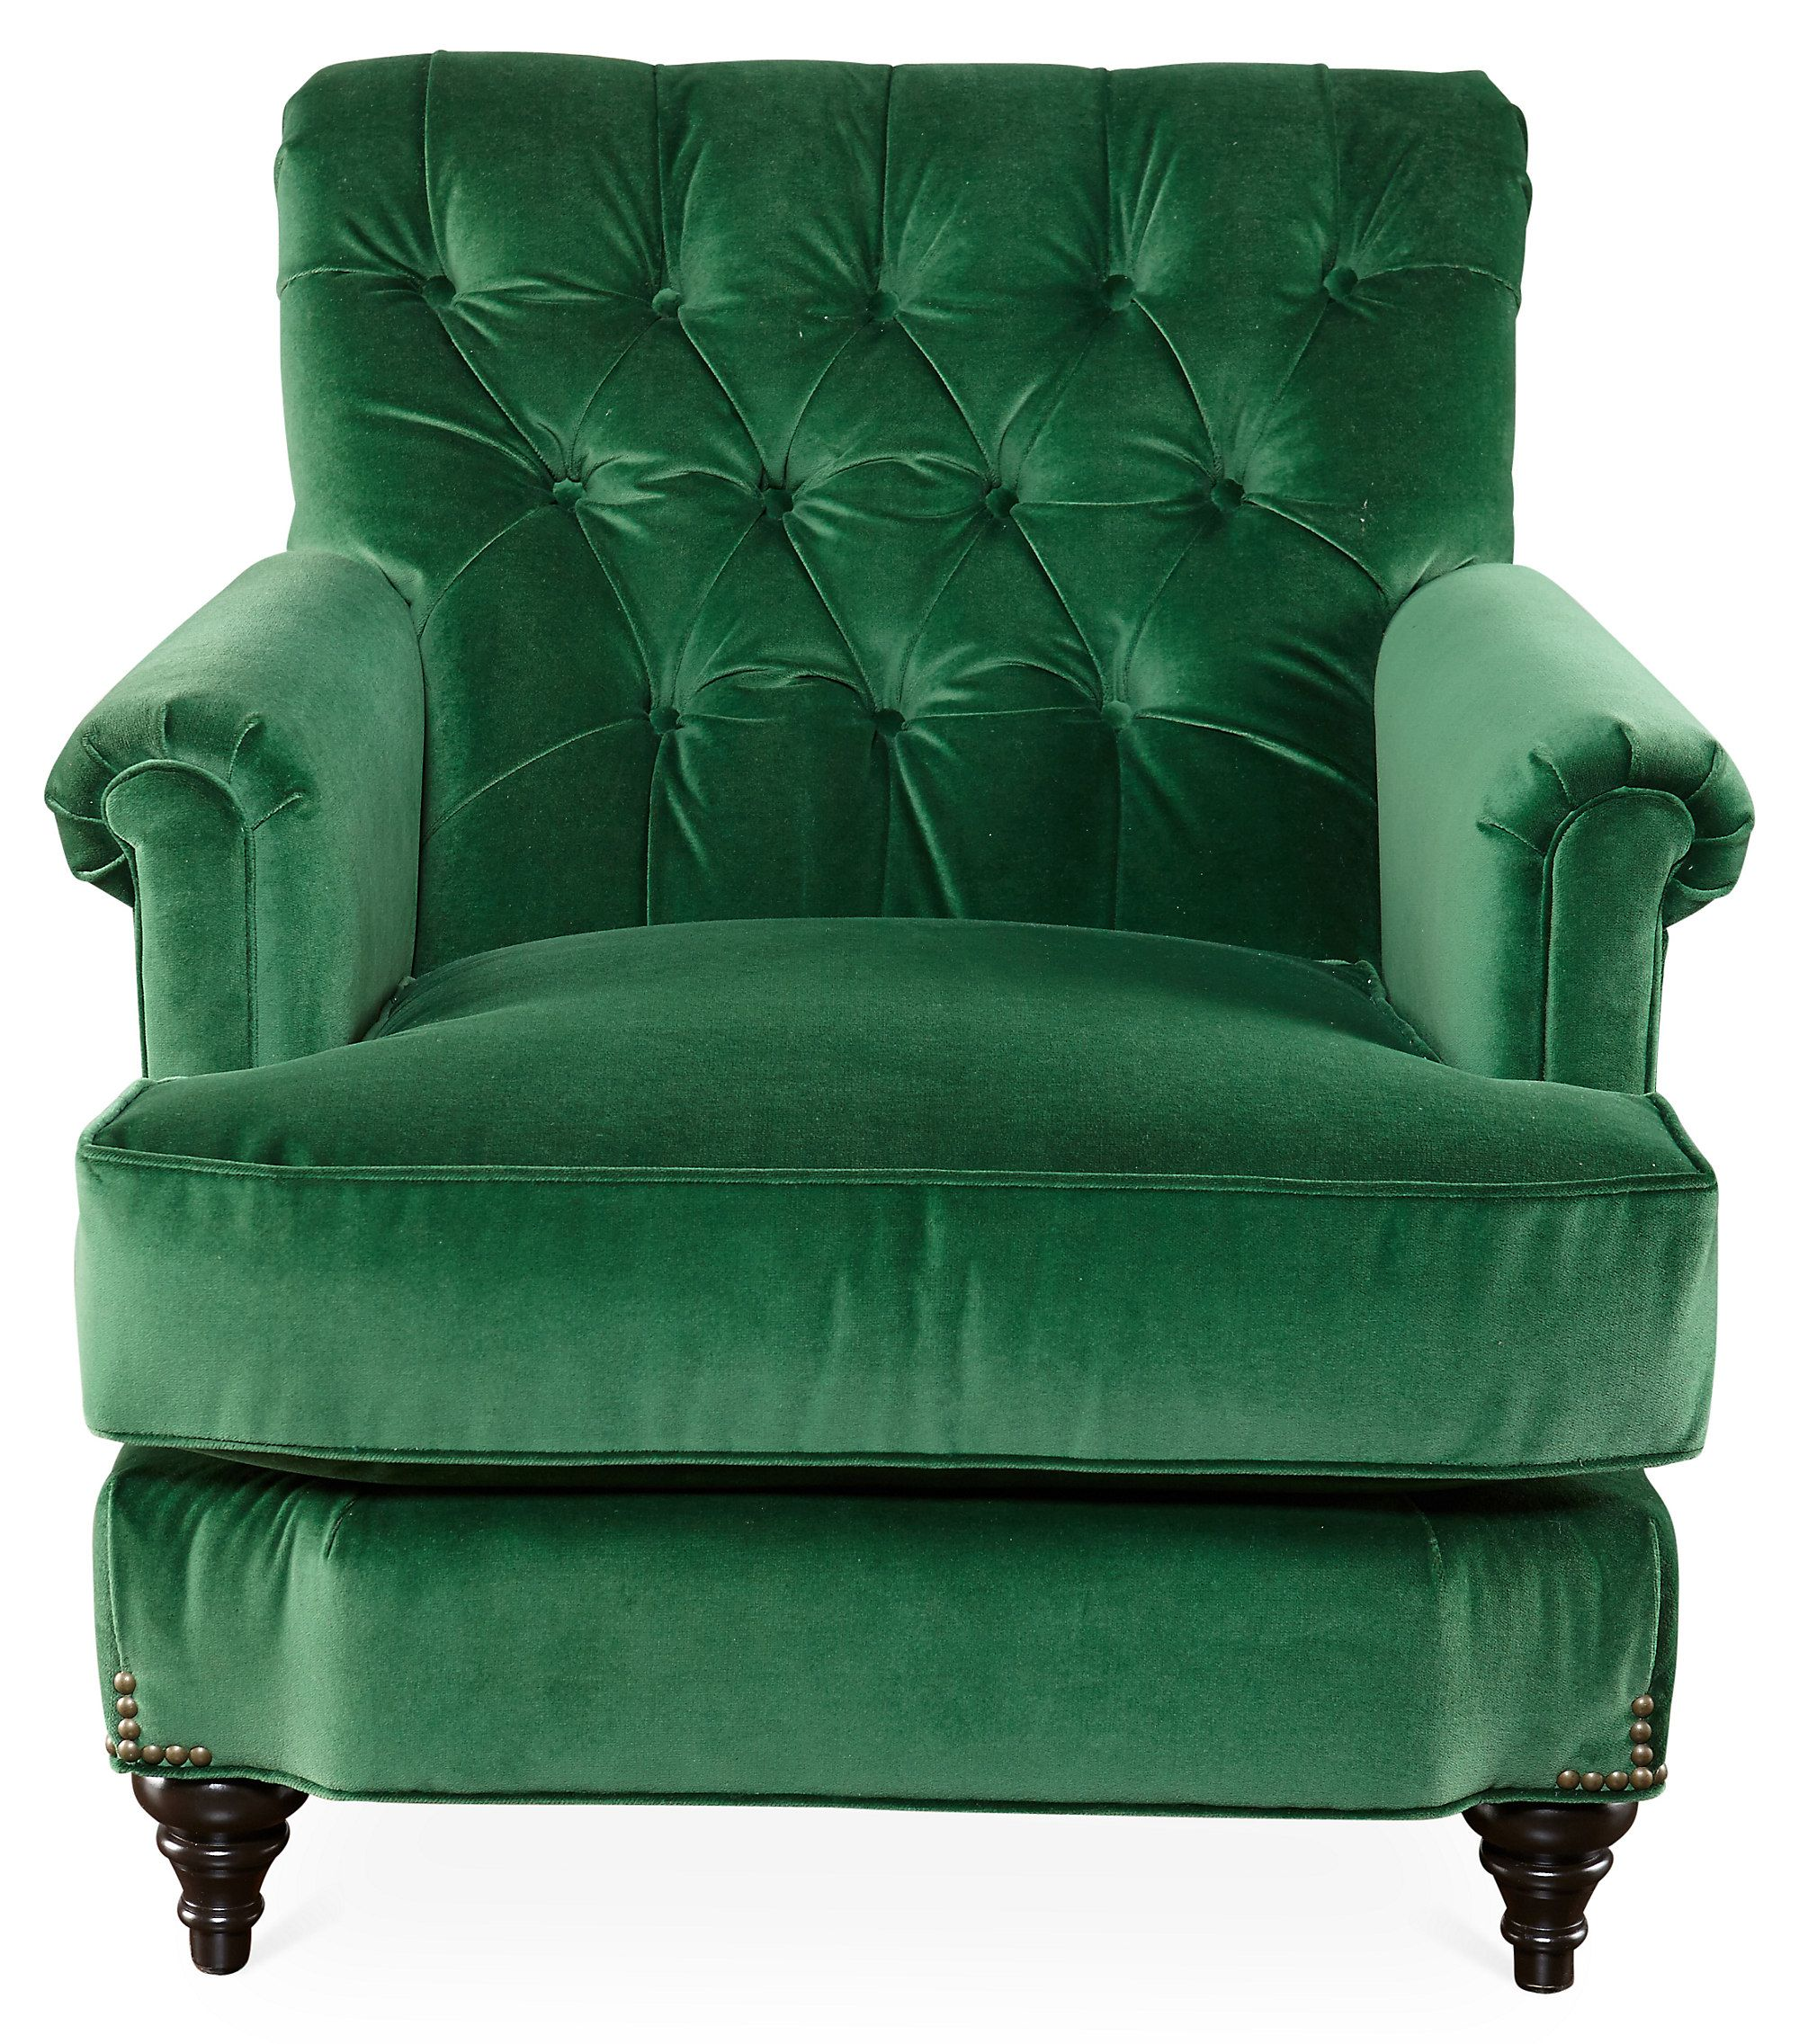 green velvet swivel chair how to install rail molding with wainscoting tufted home ideas